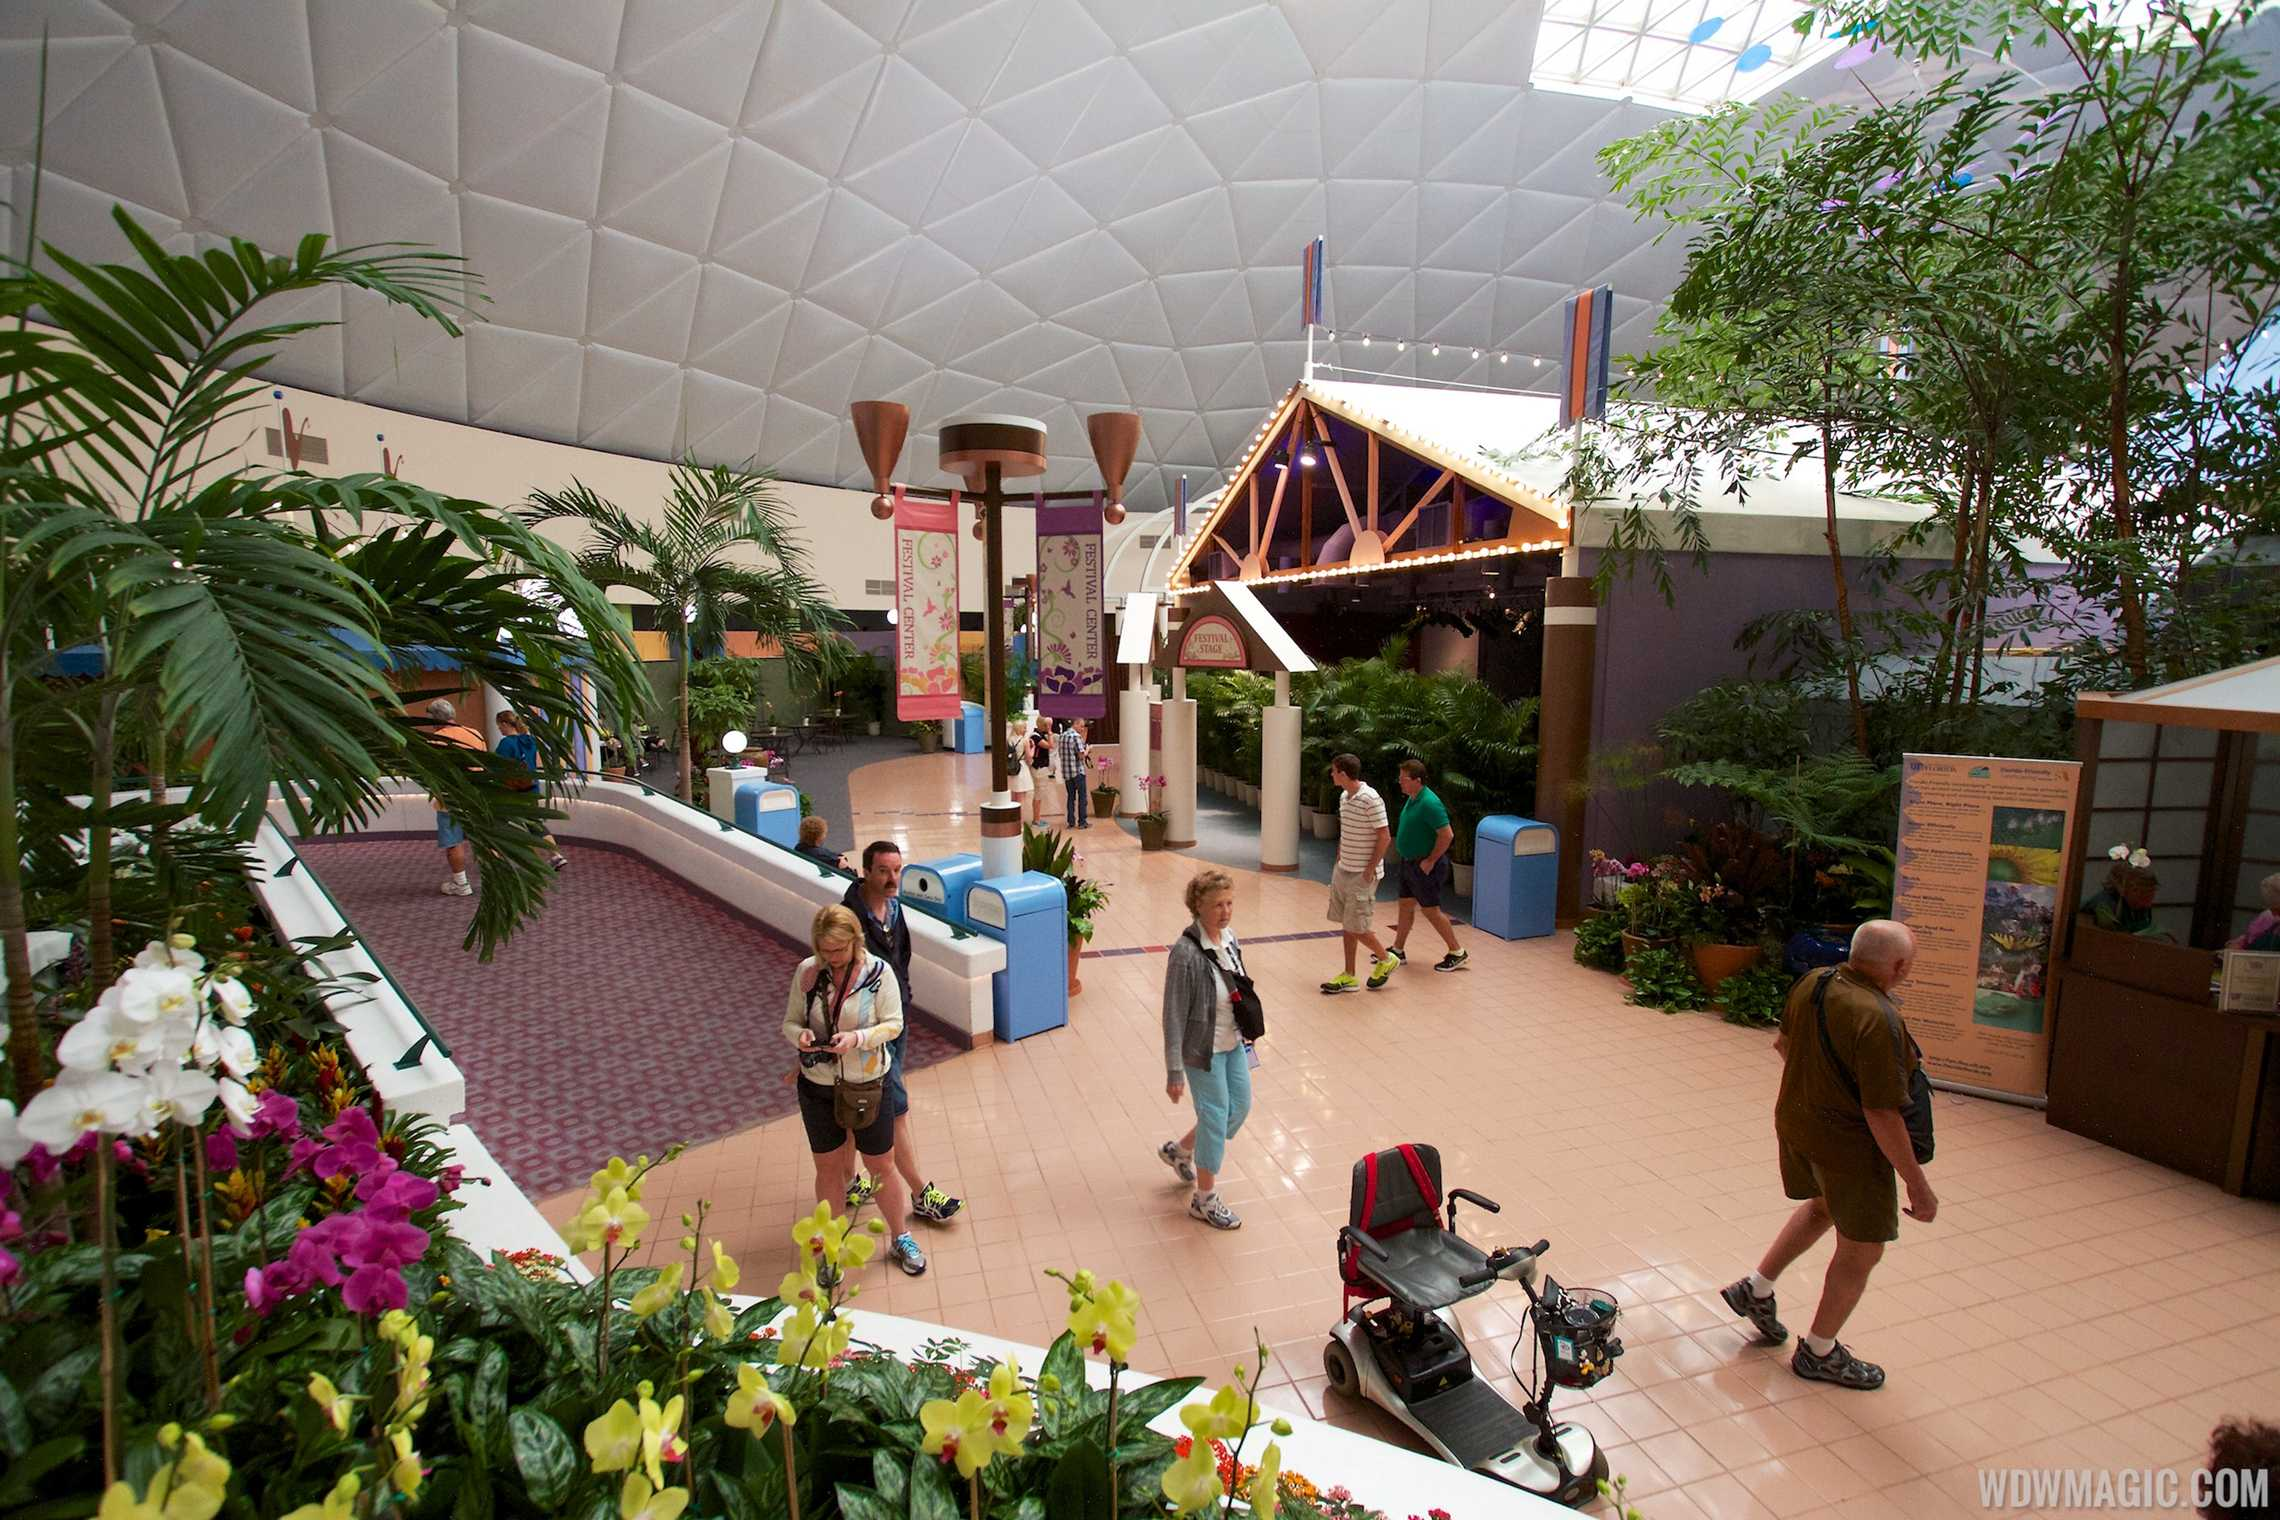 2014 Epcot International Flower And Garden Festival Opening Day Tour Photo 38 Of 82